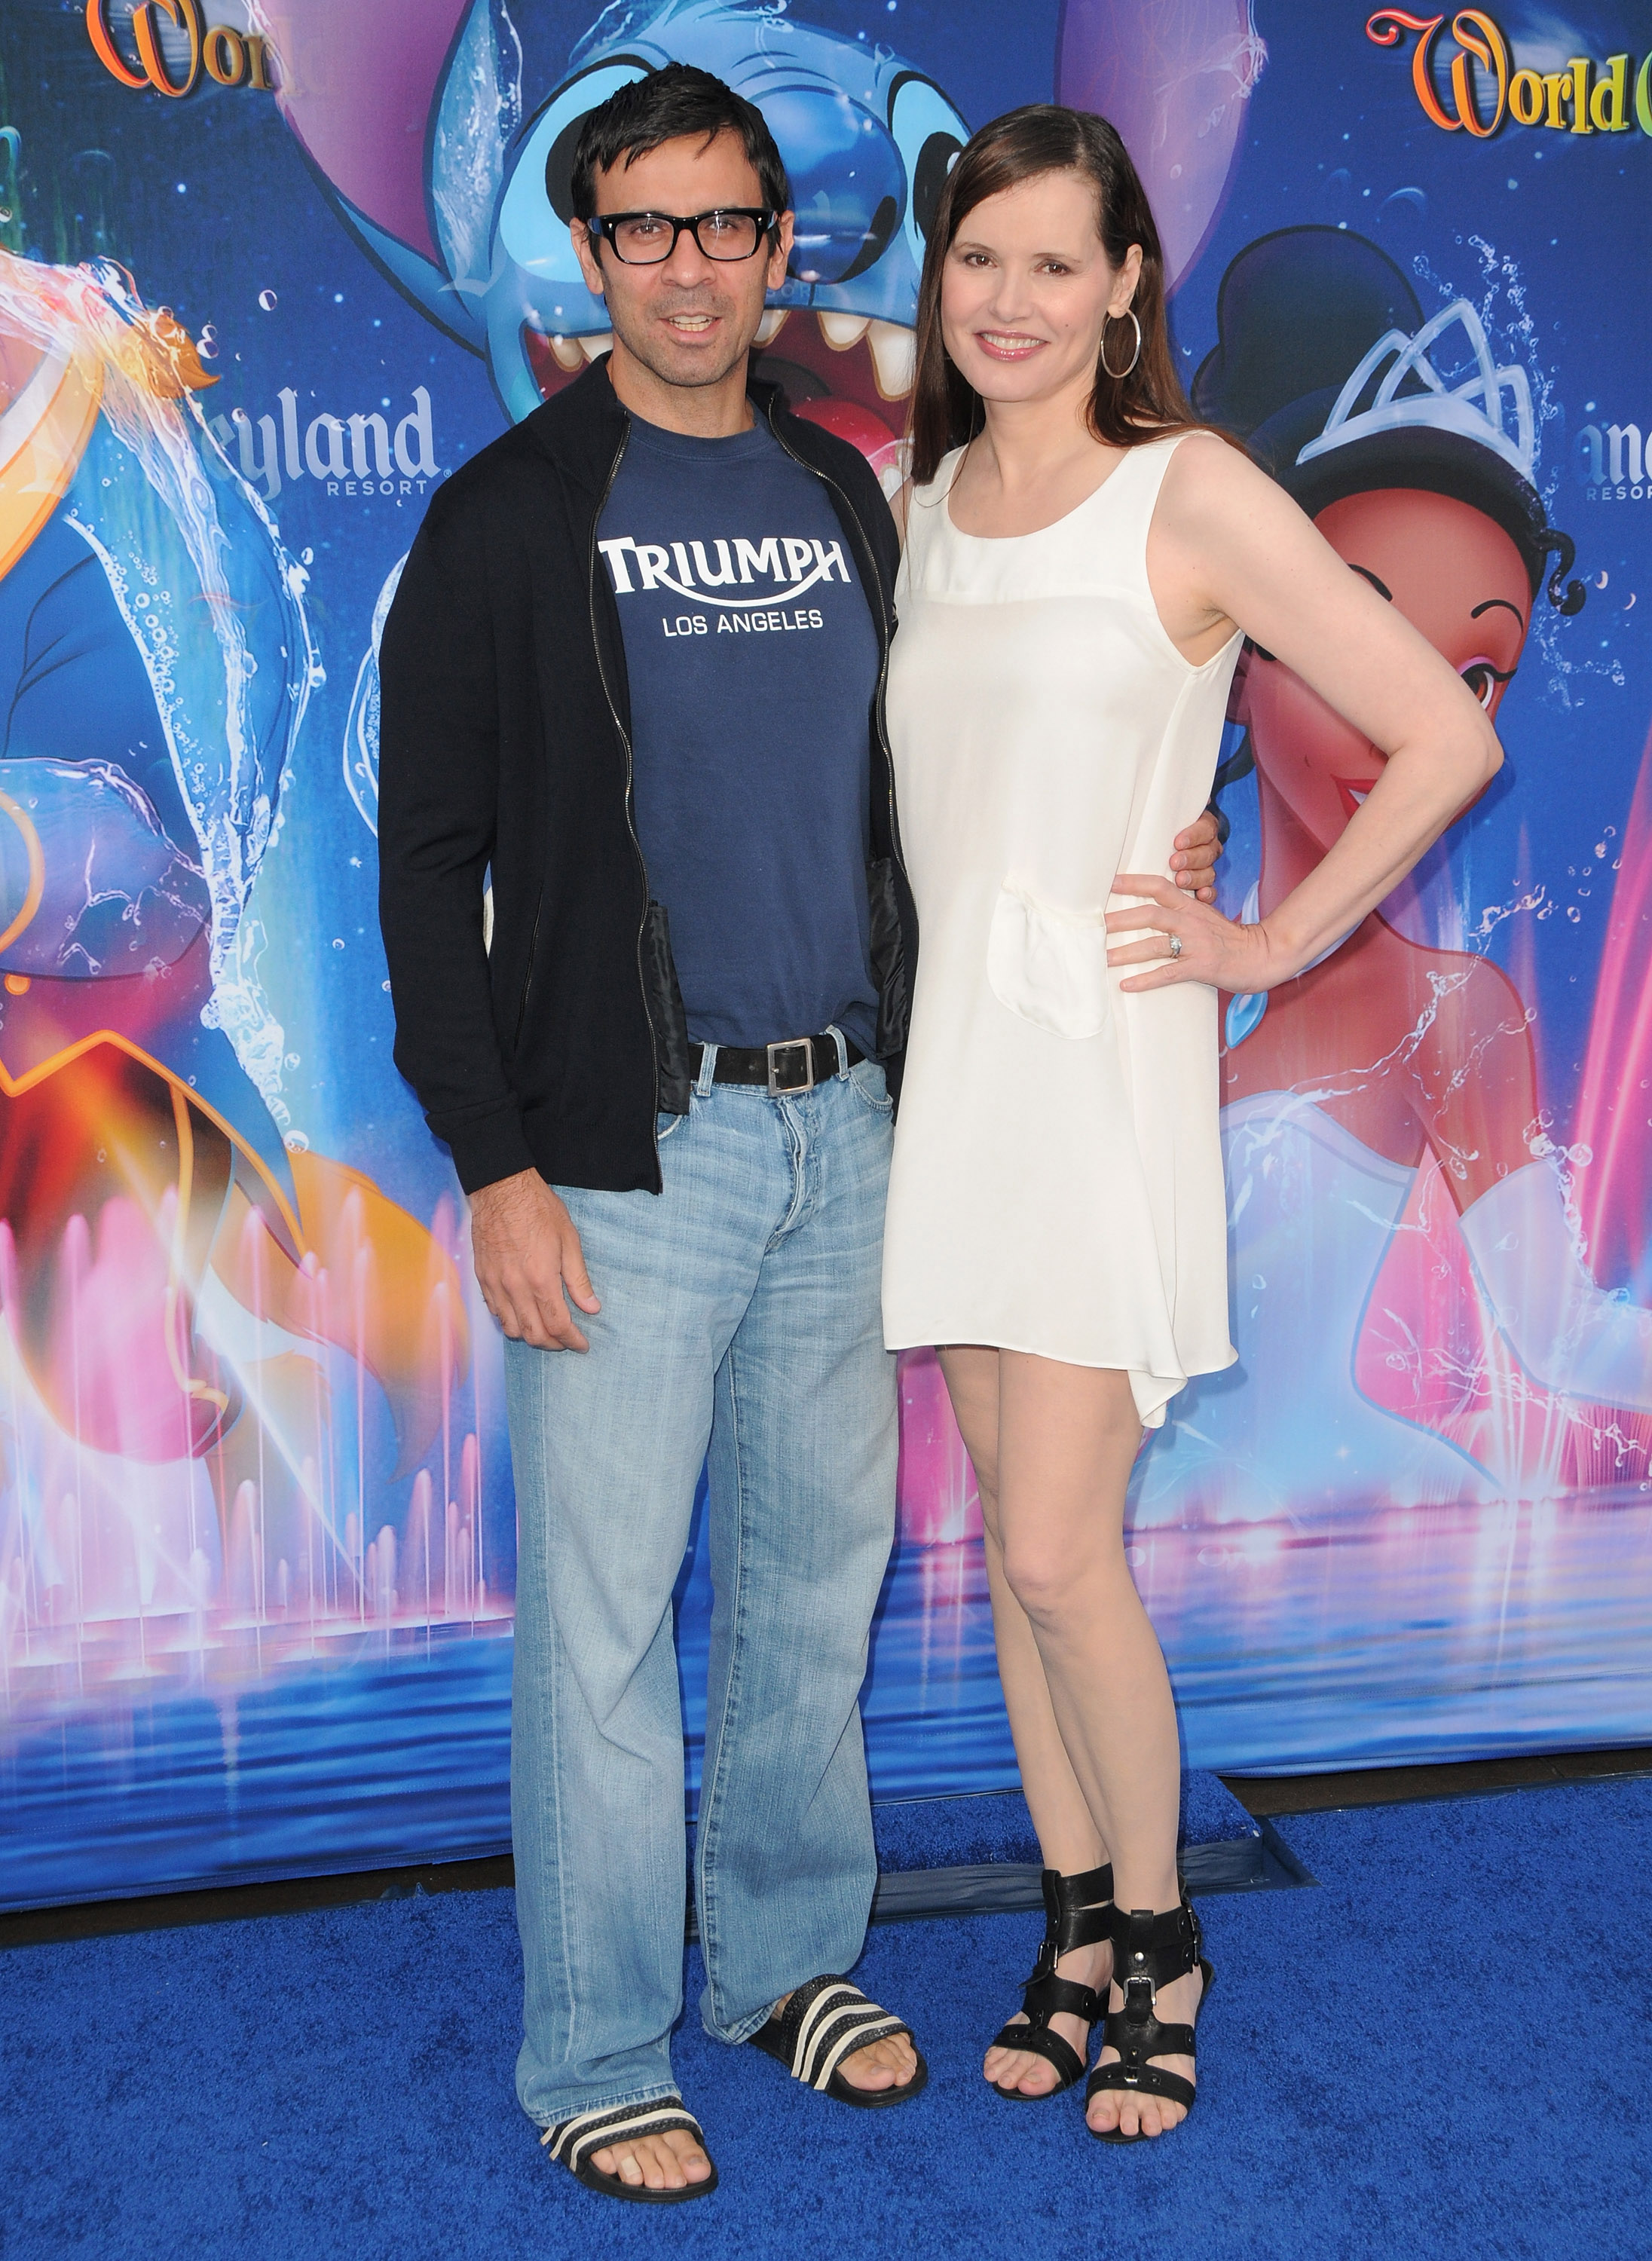 64571_GeenaDavis_world_of_color_disneyland_debut_21_122_348lo.jpg